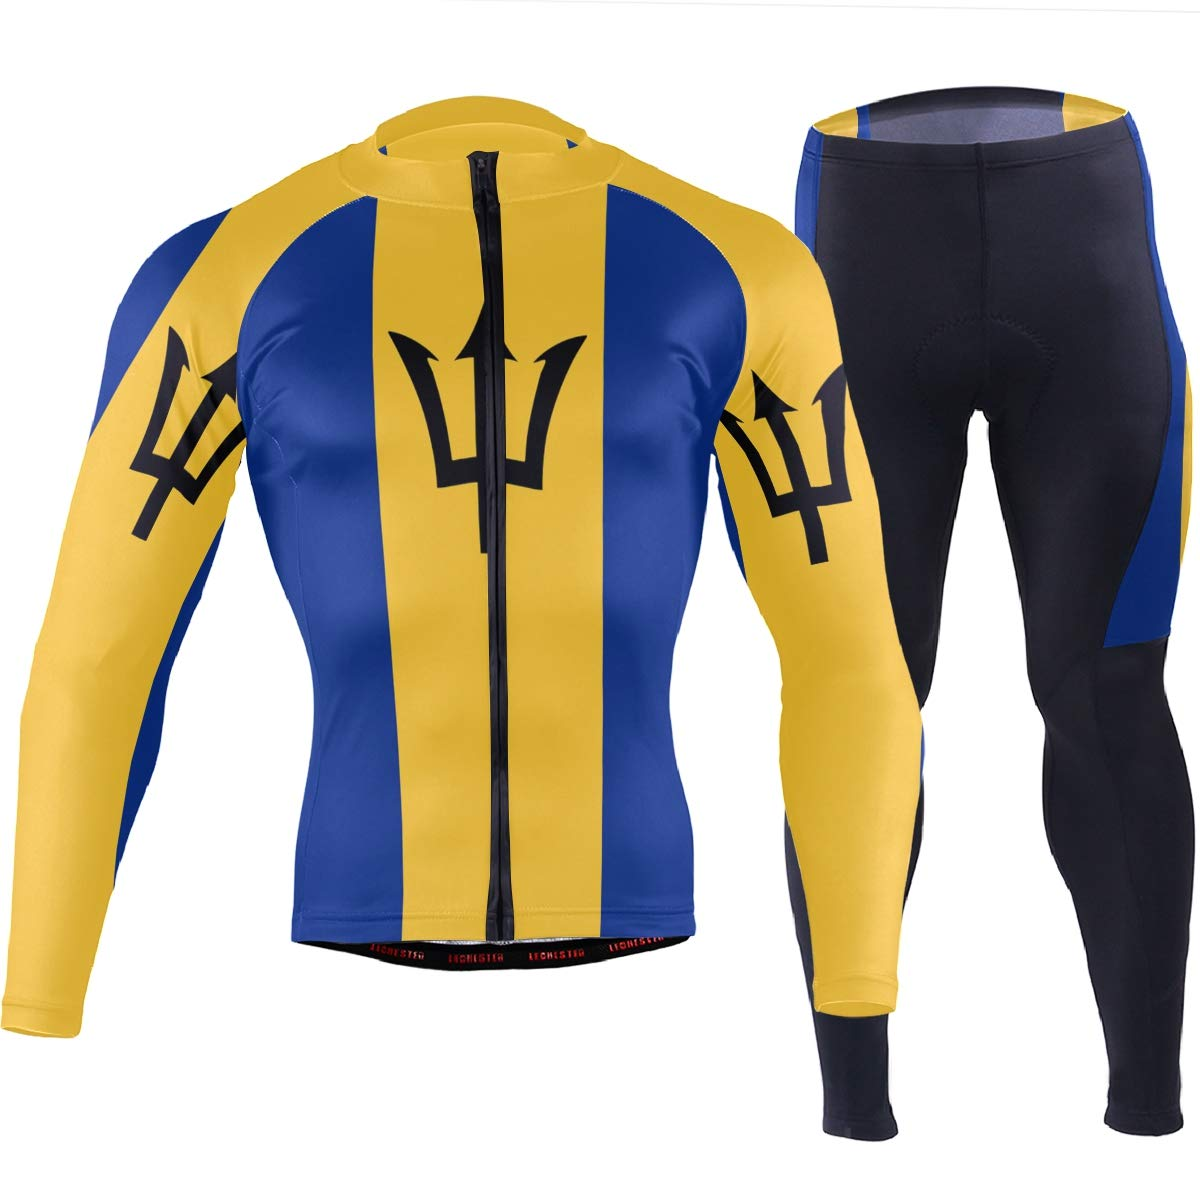 CHINEIN Men's Cycling Jersey Long Sleeve with 3 Rear Pockets Suit Barbados Flag by CHINEIN